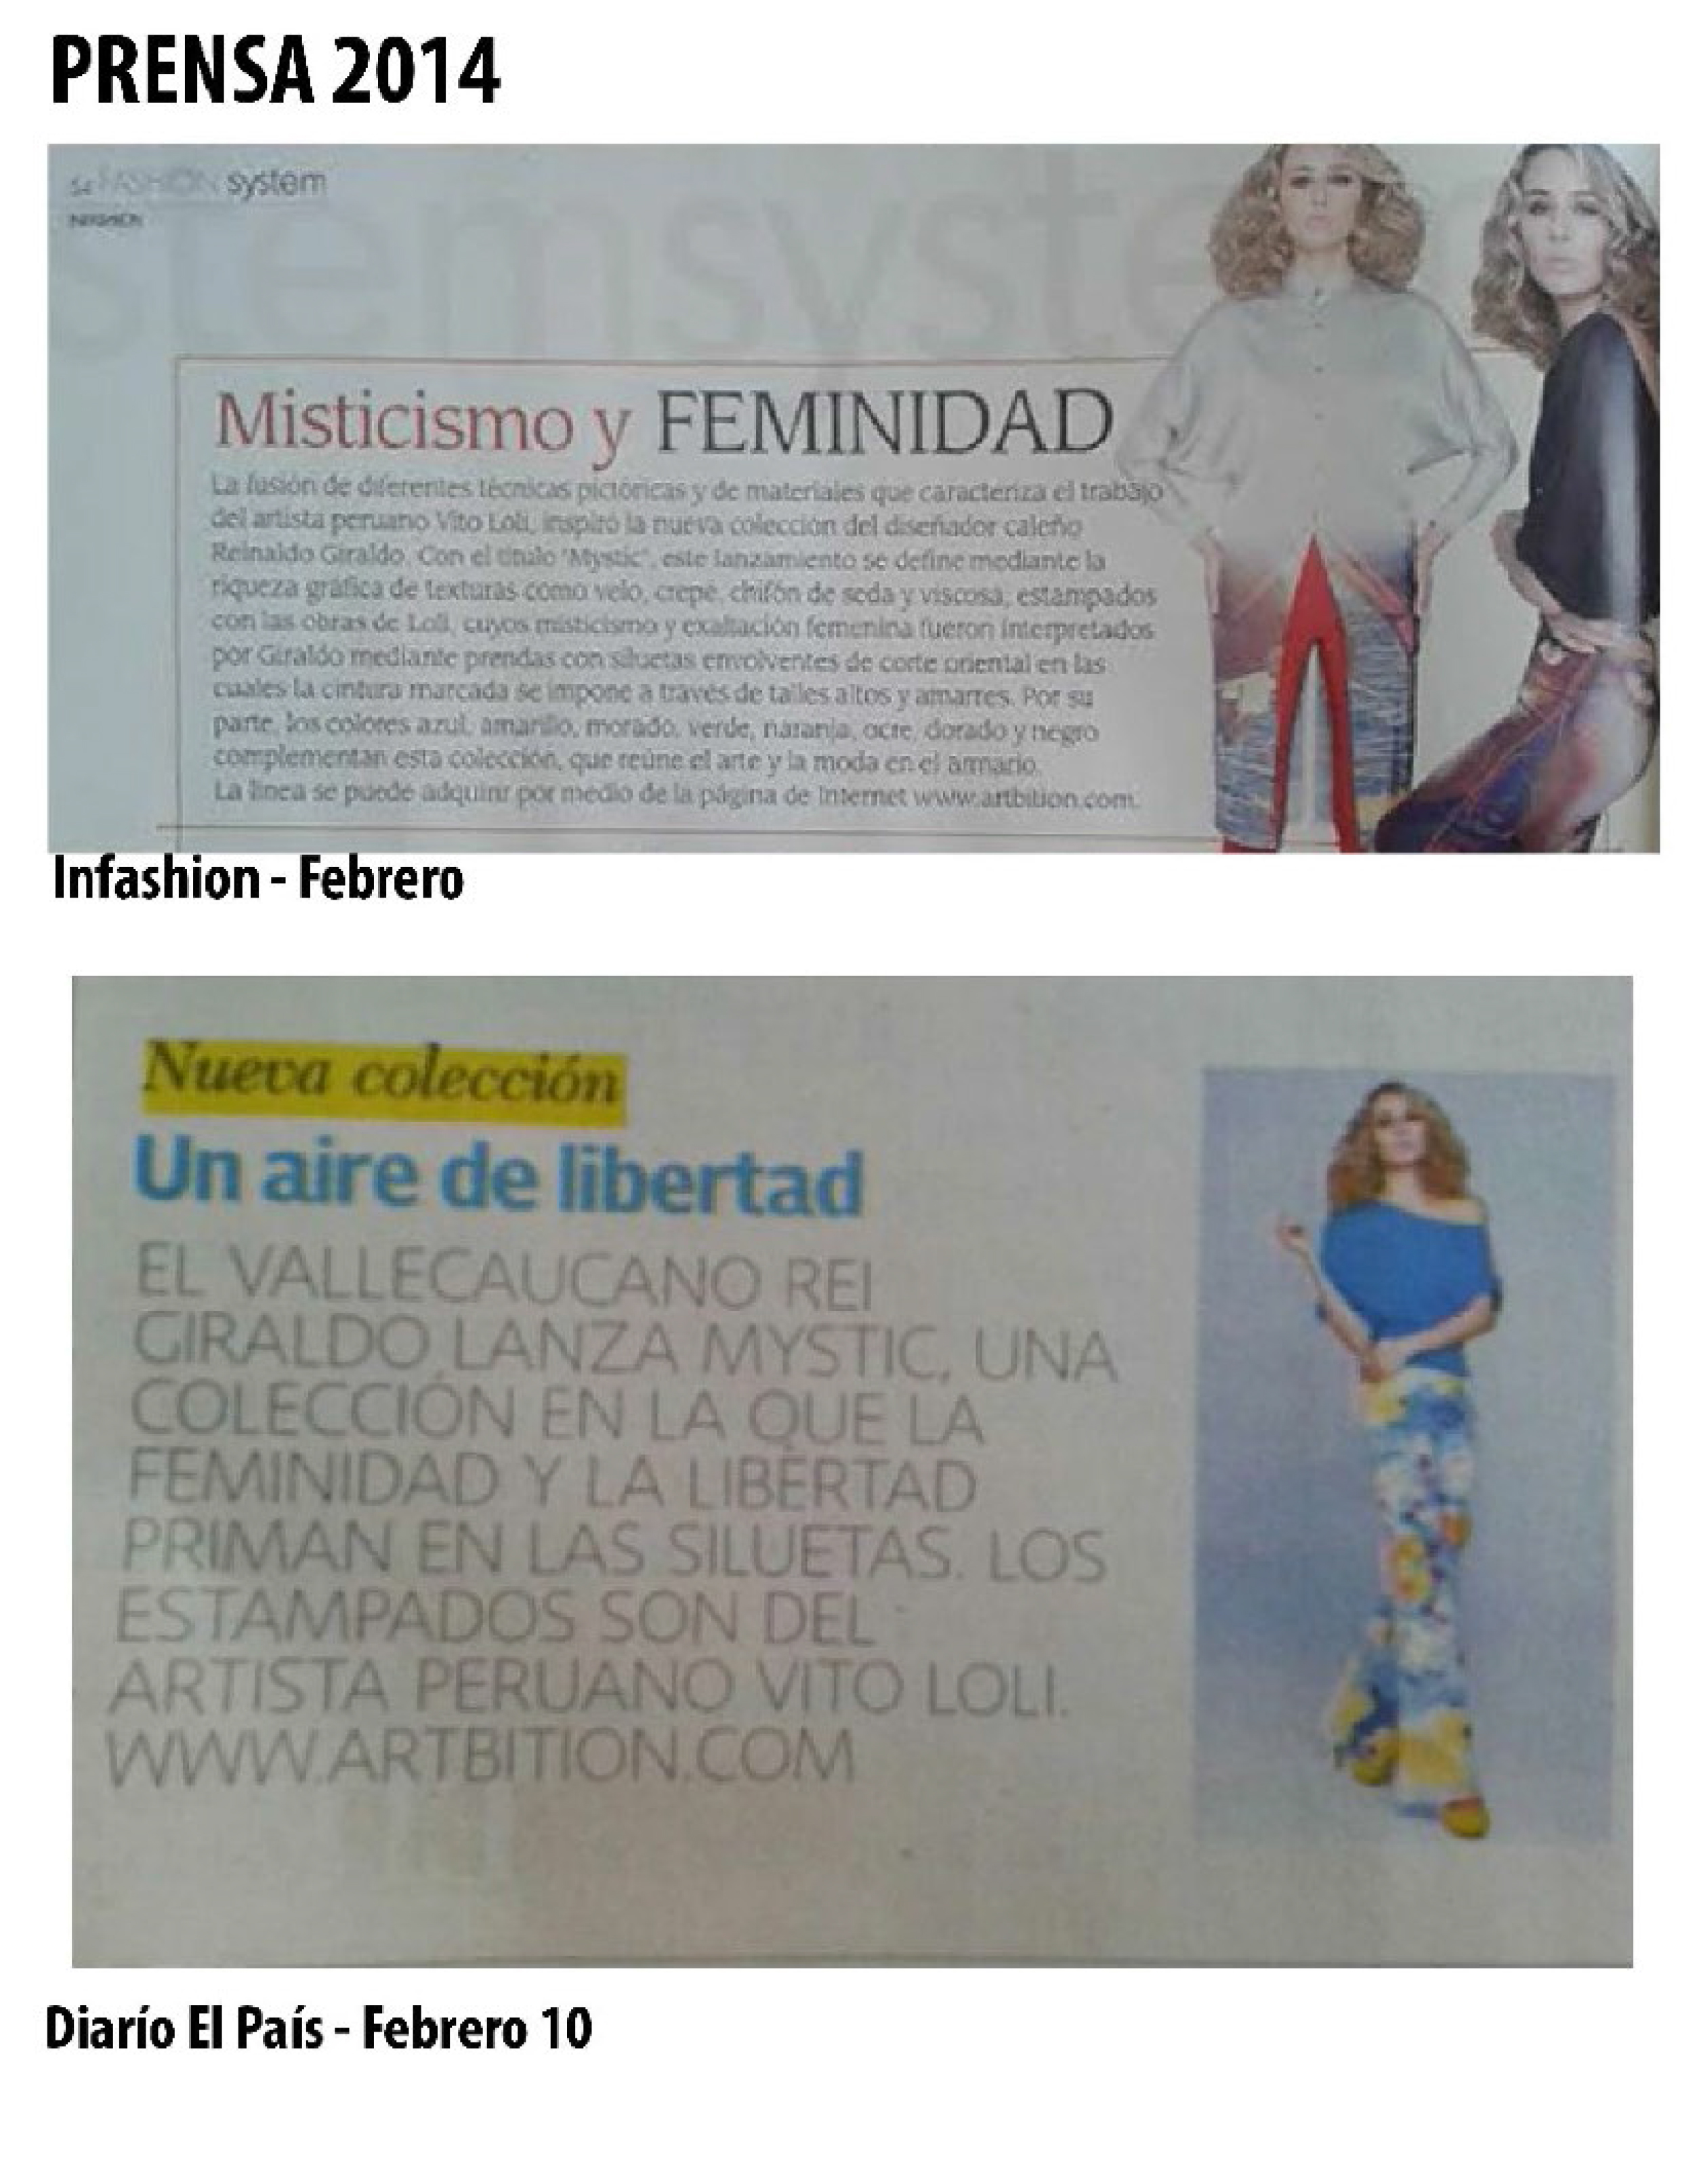 INFASHION_DIARIO_EL_PAIS_REI_GIRALDO_PRESS_PRENSA